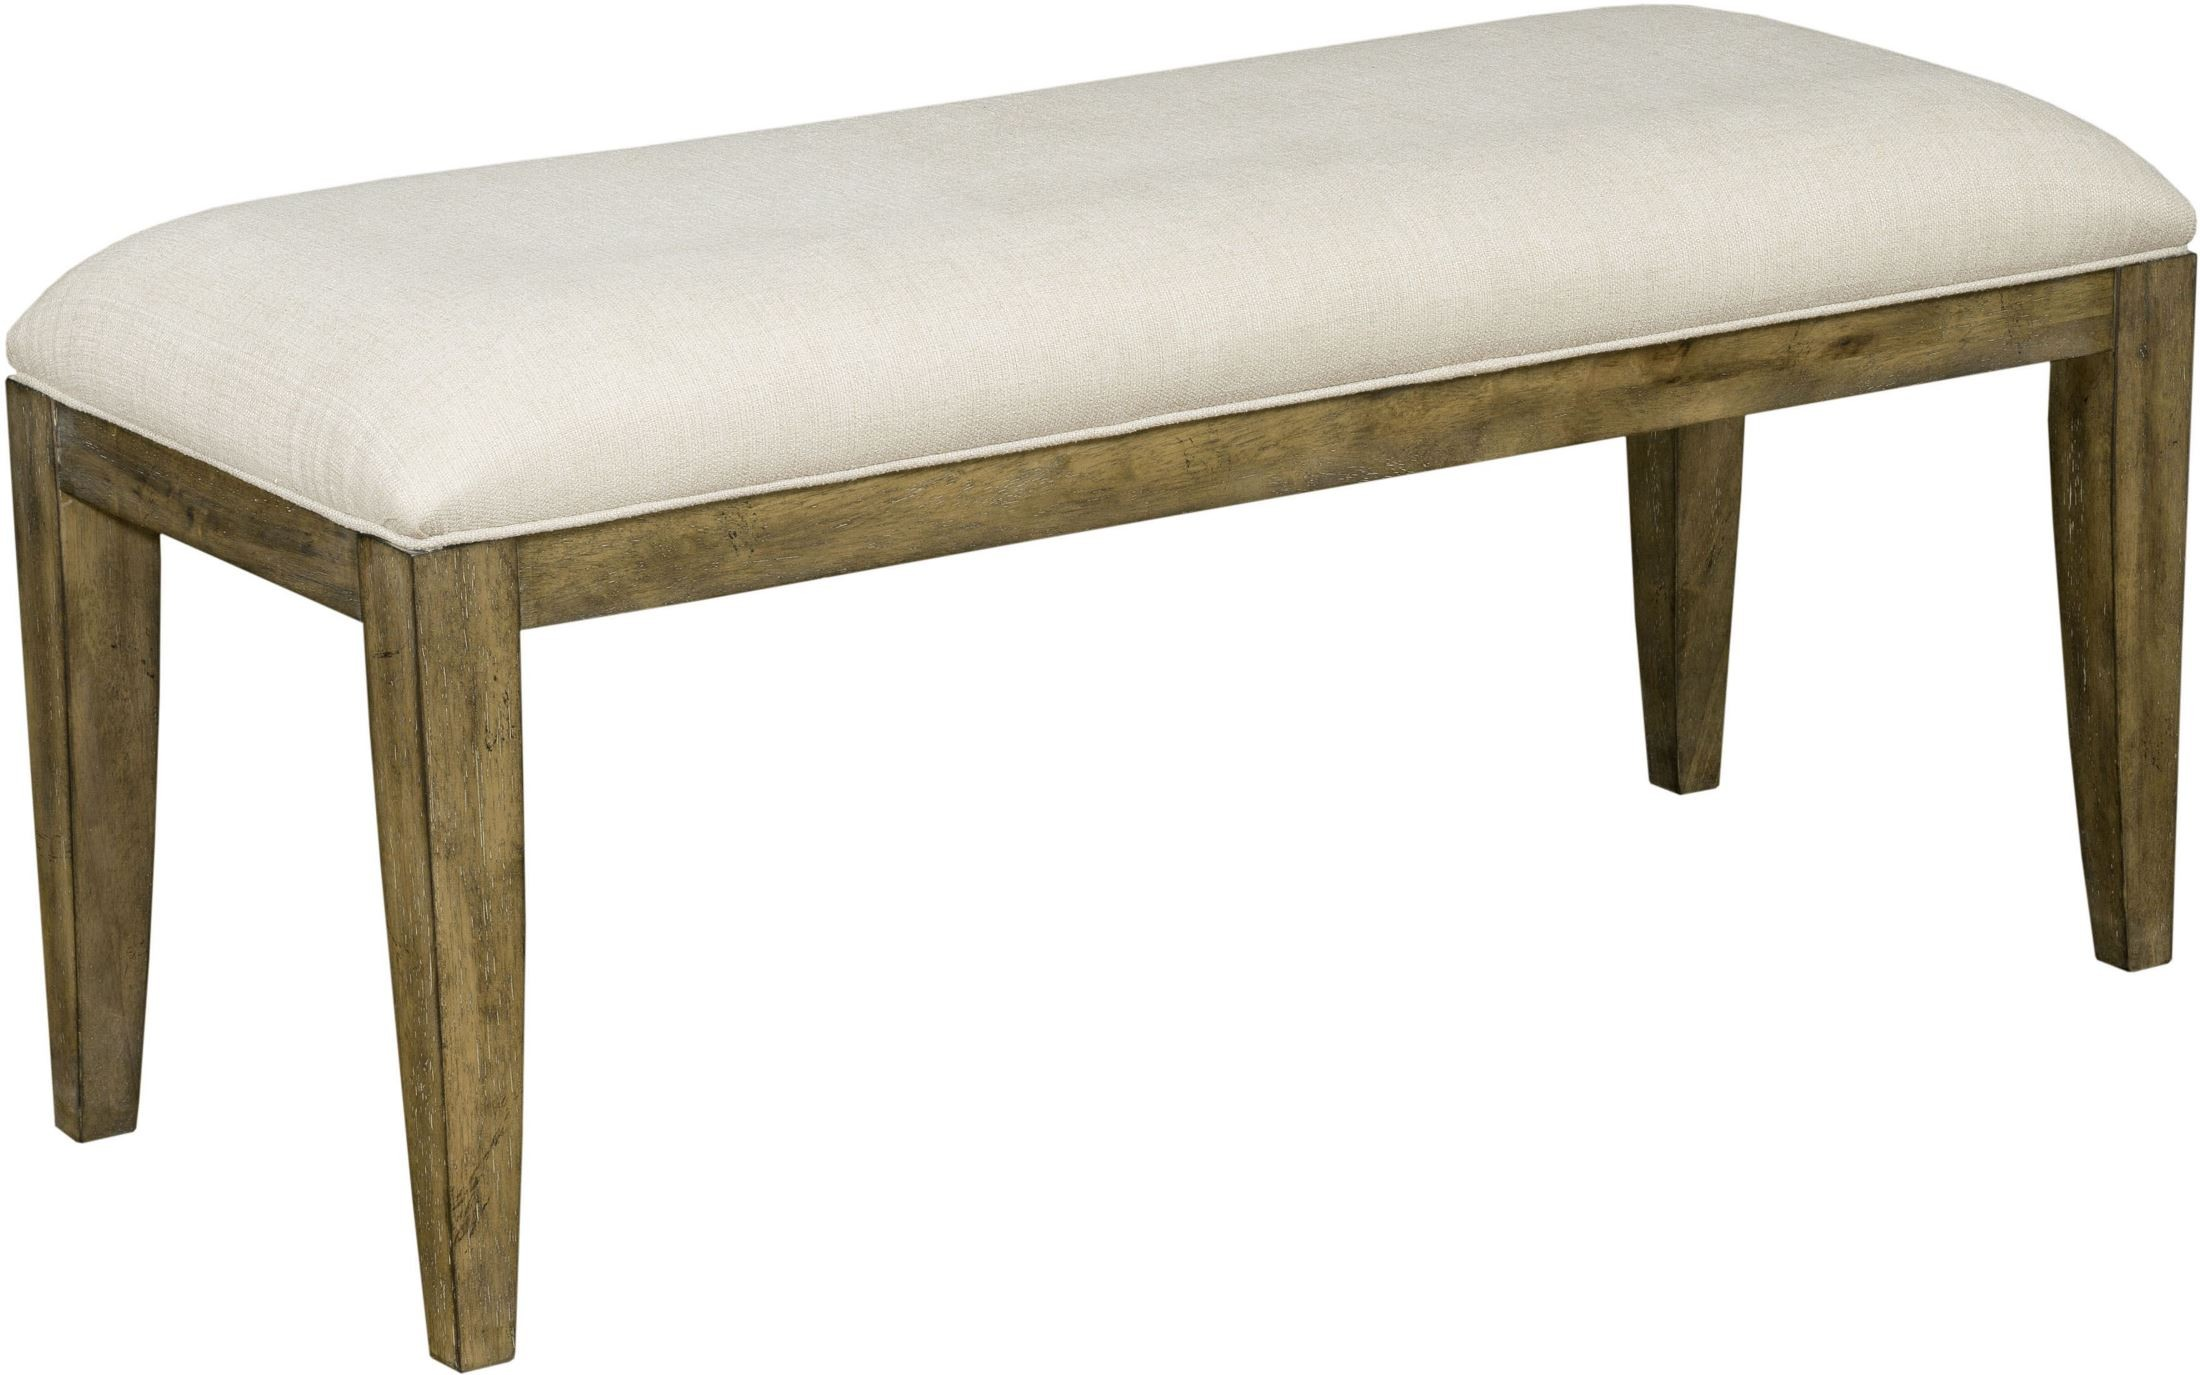 The Nook Oak Parsons Bench From Kincaid Furniture Coleman Furniture